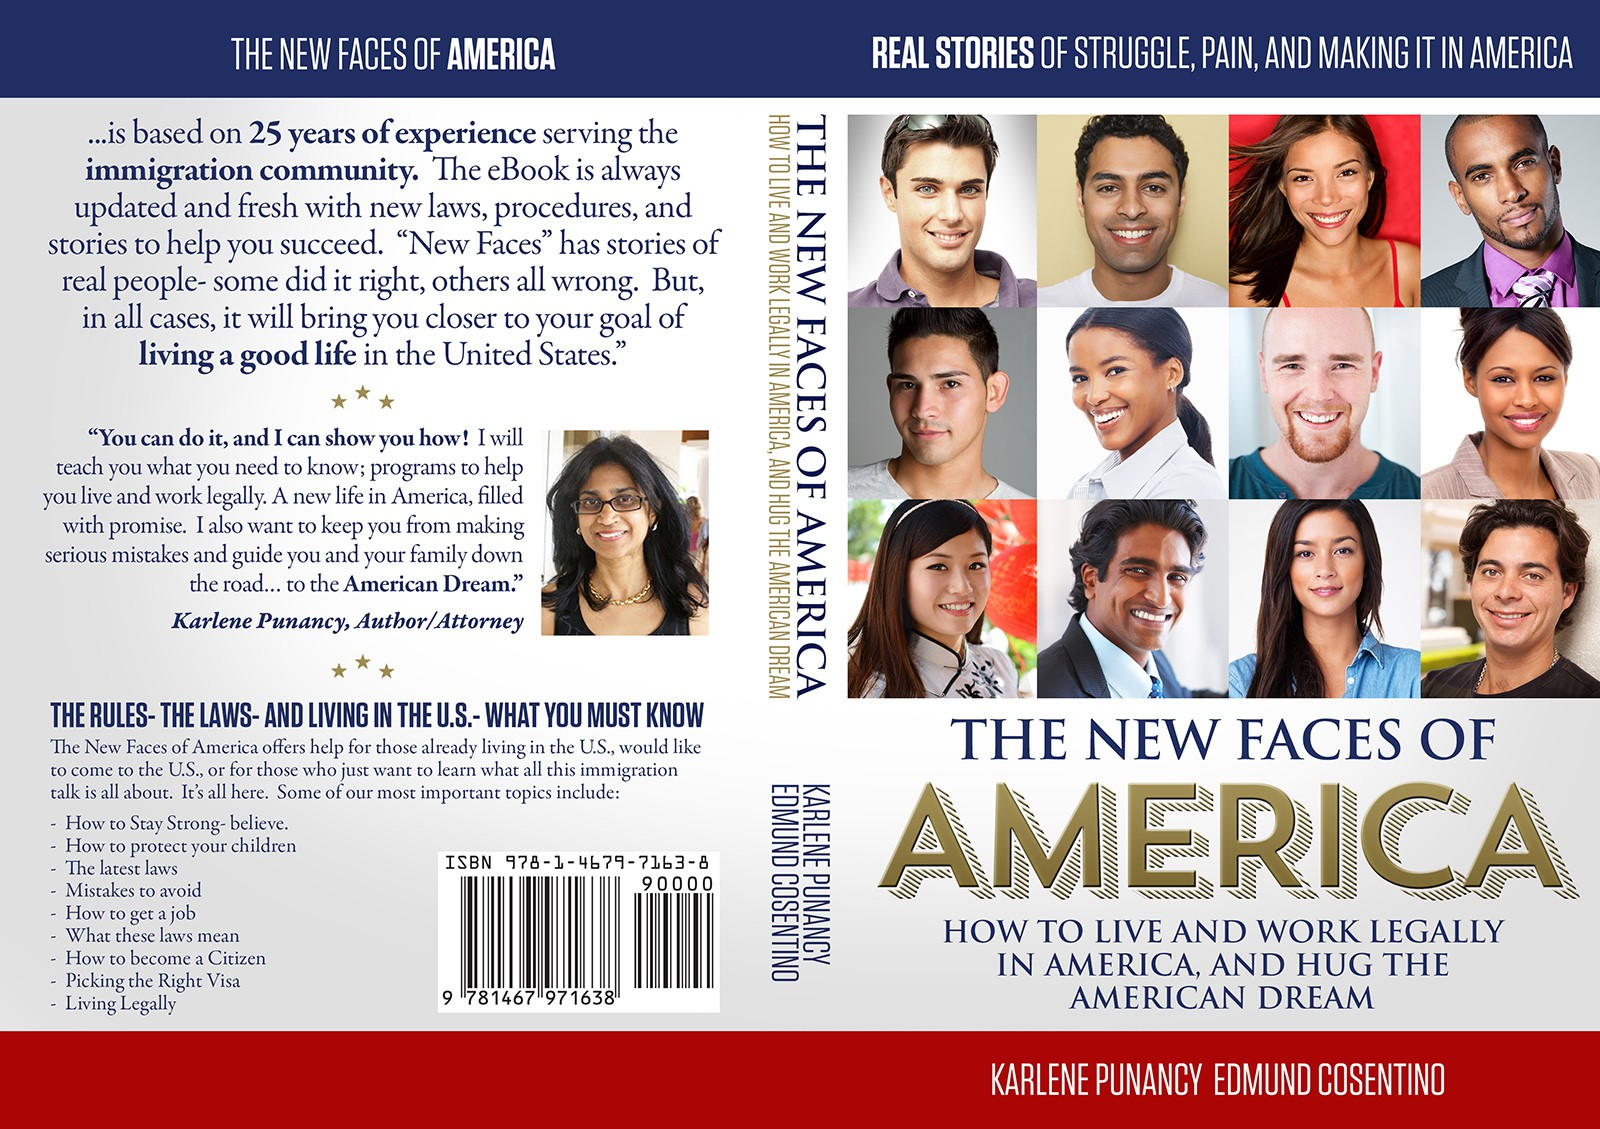 Multiculture Research Institute, Inc.  needs a new book or magazine cover